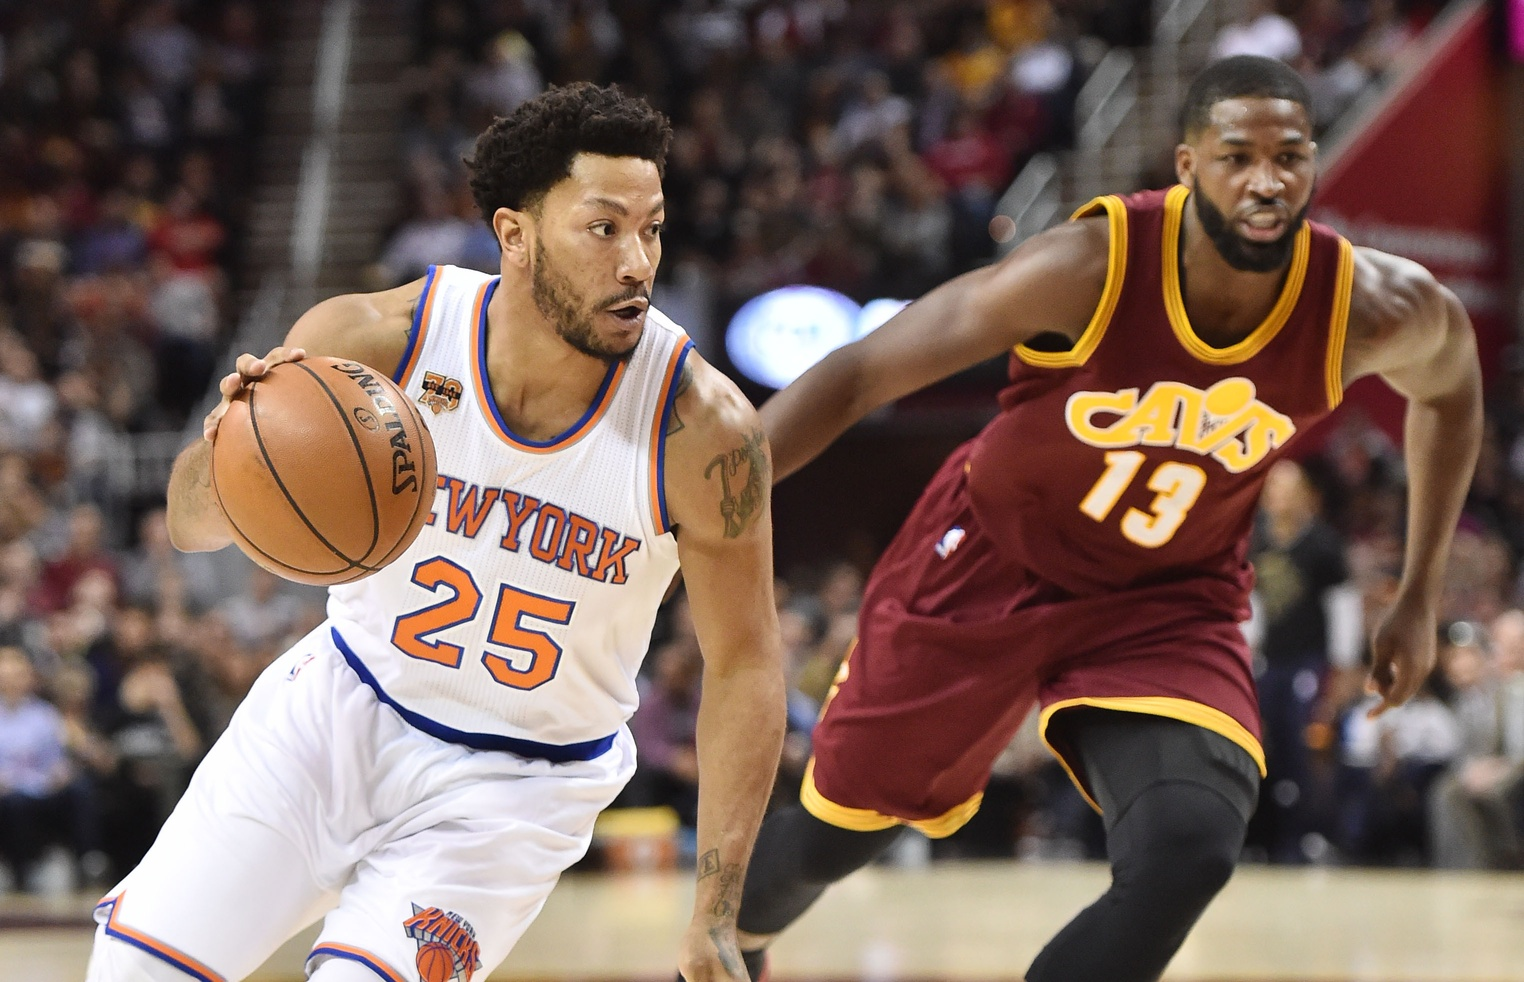 New York Knicks: Derrick Rose still hopes to re-sign after trade deadline talks